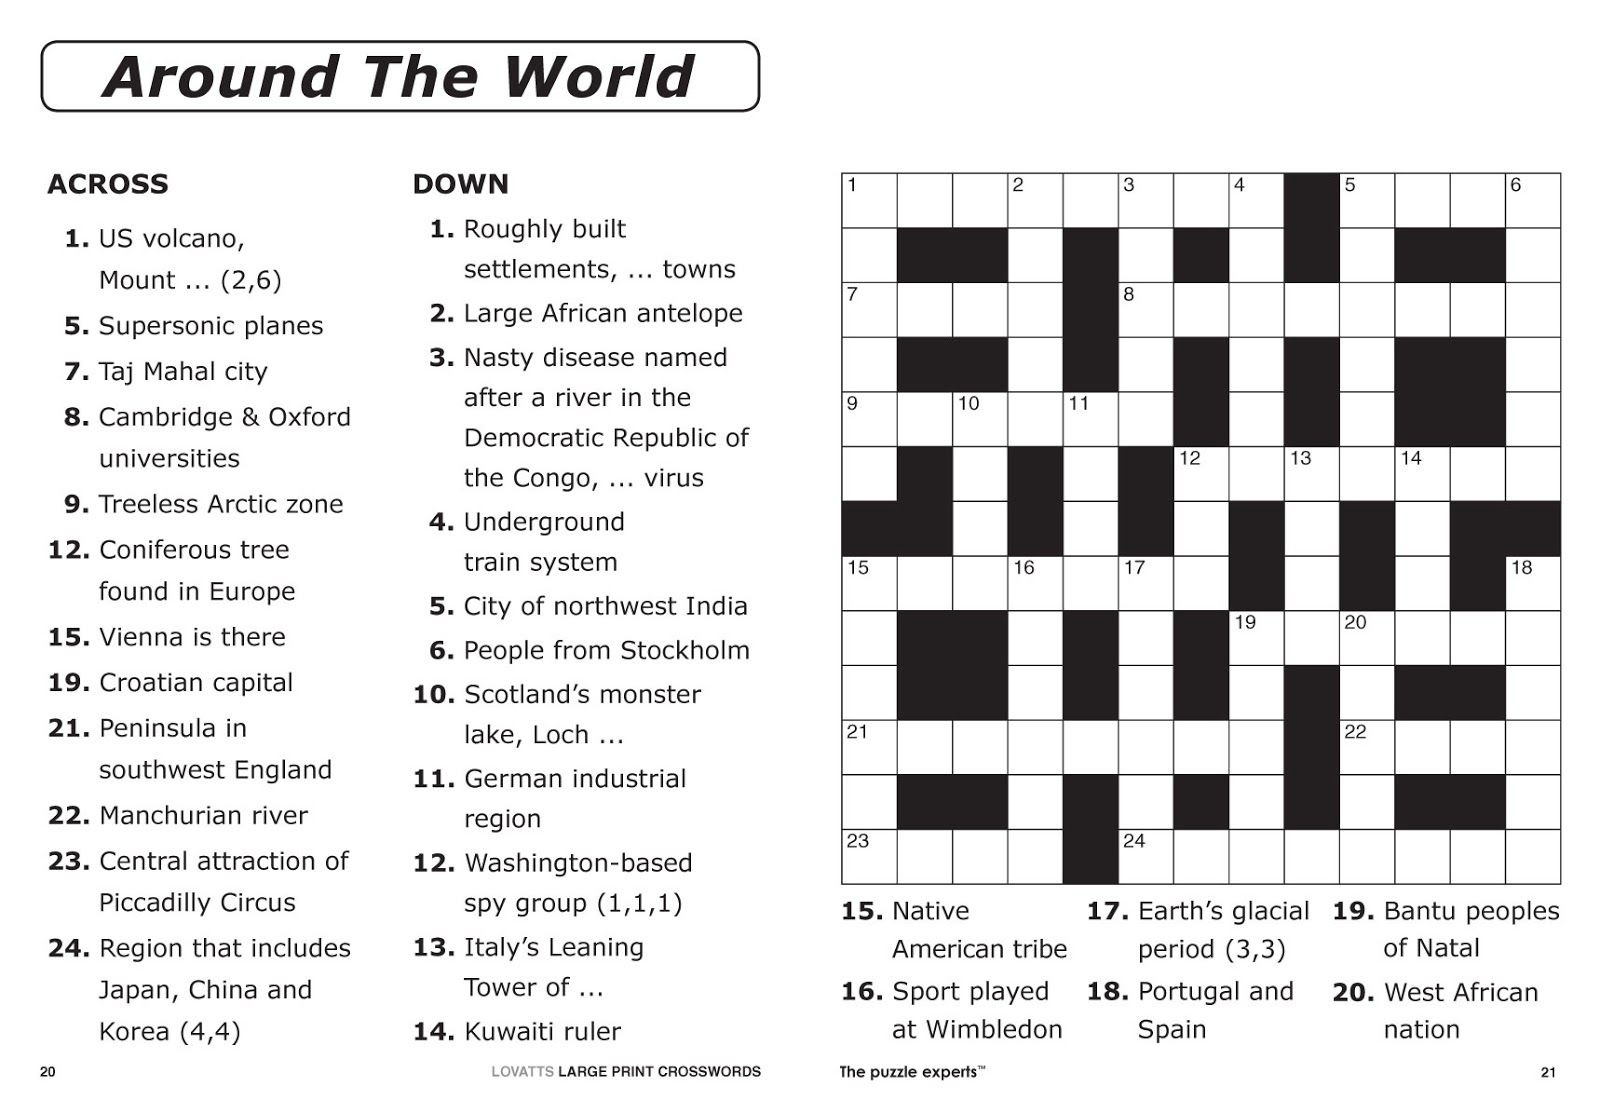 Free Printable Large Print Crossword Puzzles | M3U8 - Free Printable Fill In Puzzles Online